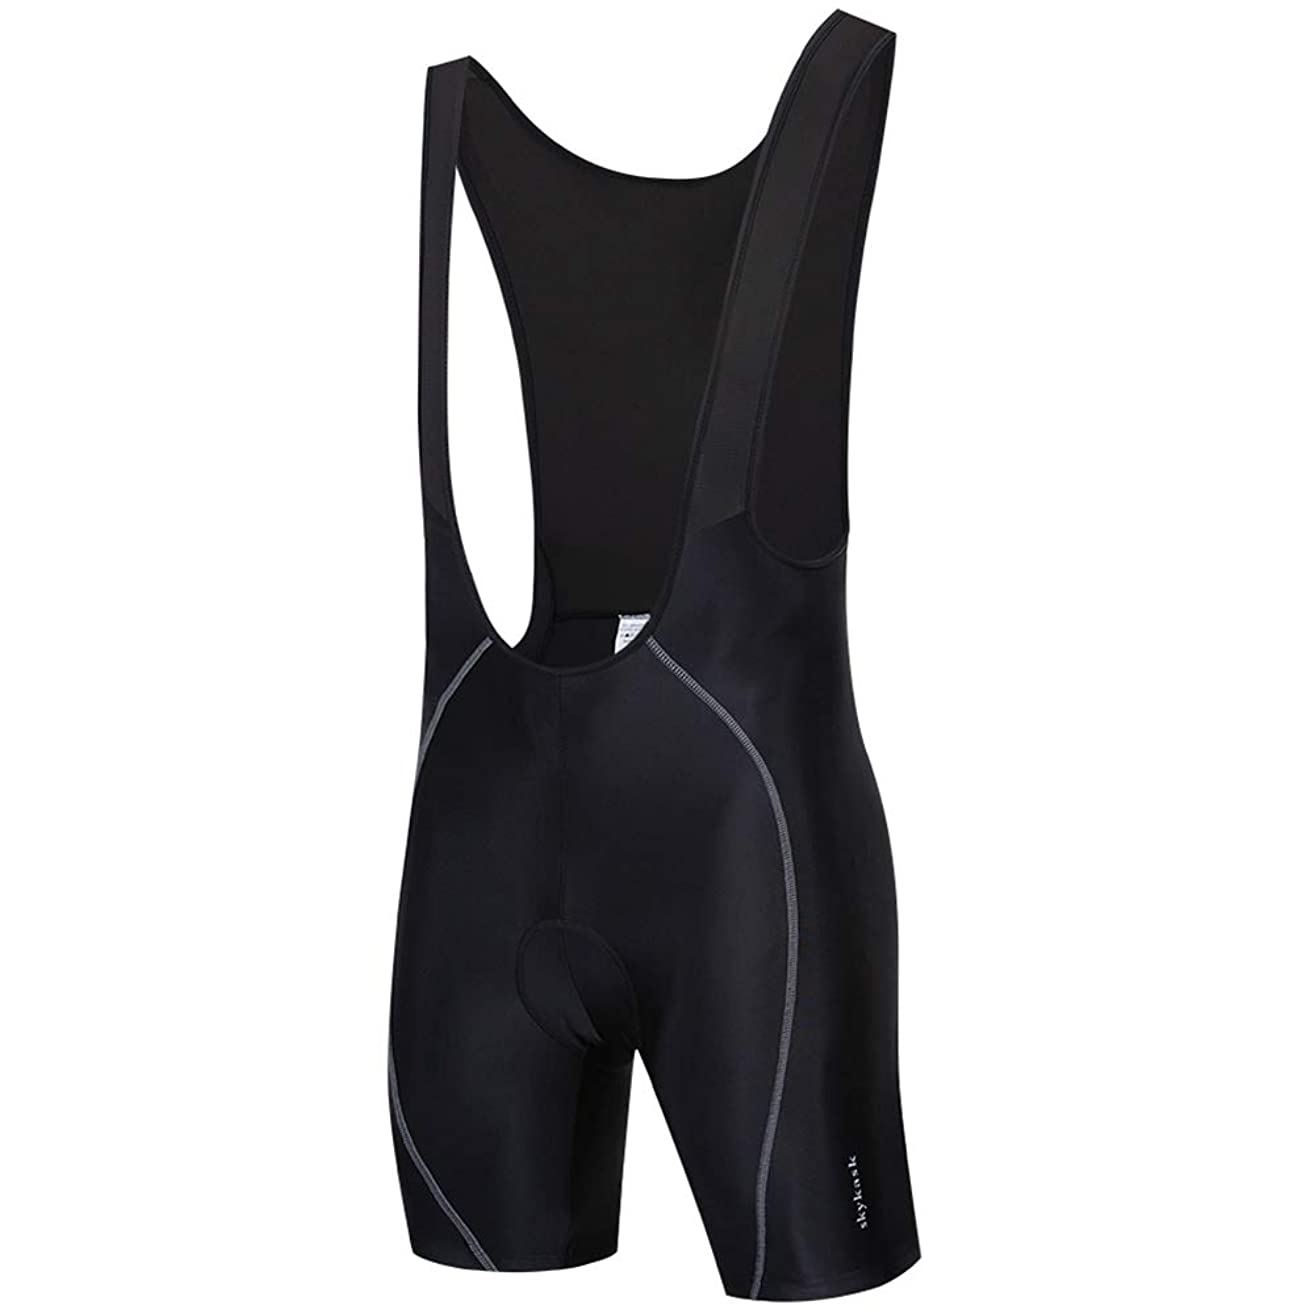 Ftiier Men's Cycling Bib Shorts with 5D Padded Bike Bicycle Compression Bike Tights Breathable Half Pants